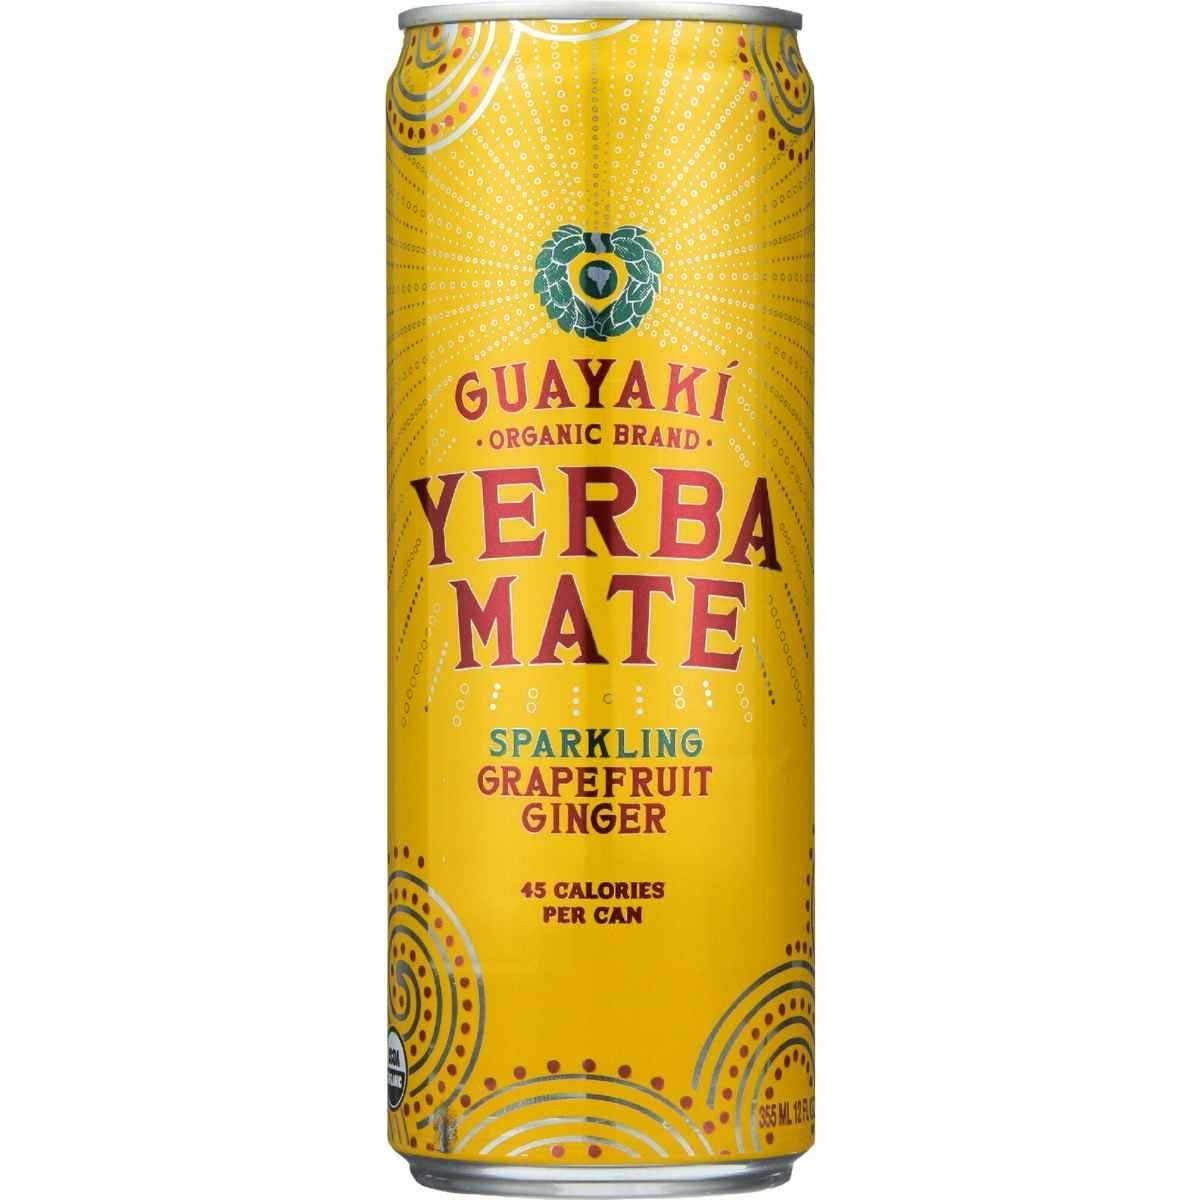 Guayaki Yerba Mate, Sparkling Grapefruit Ginger, 12 oz. (Case of 12)